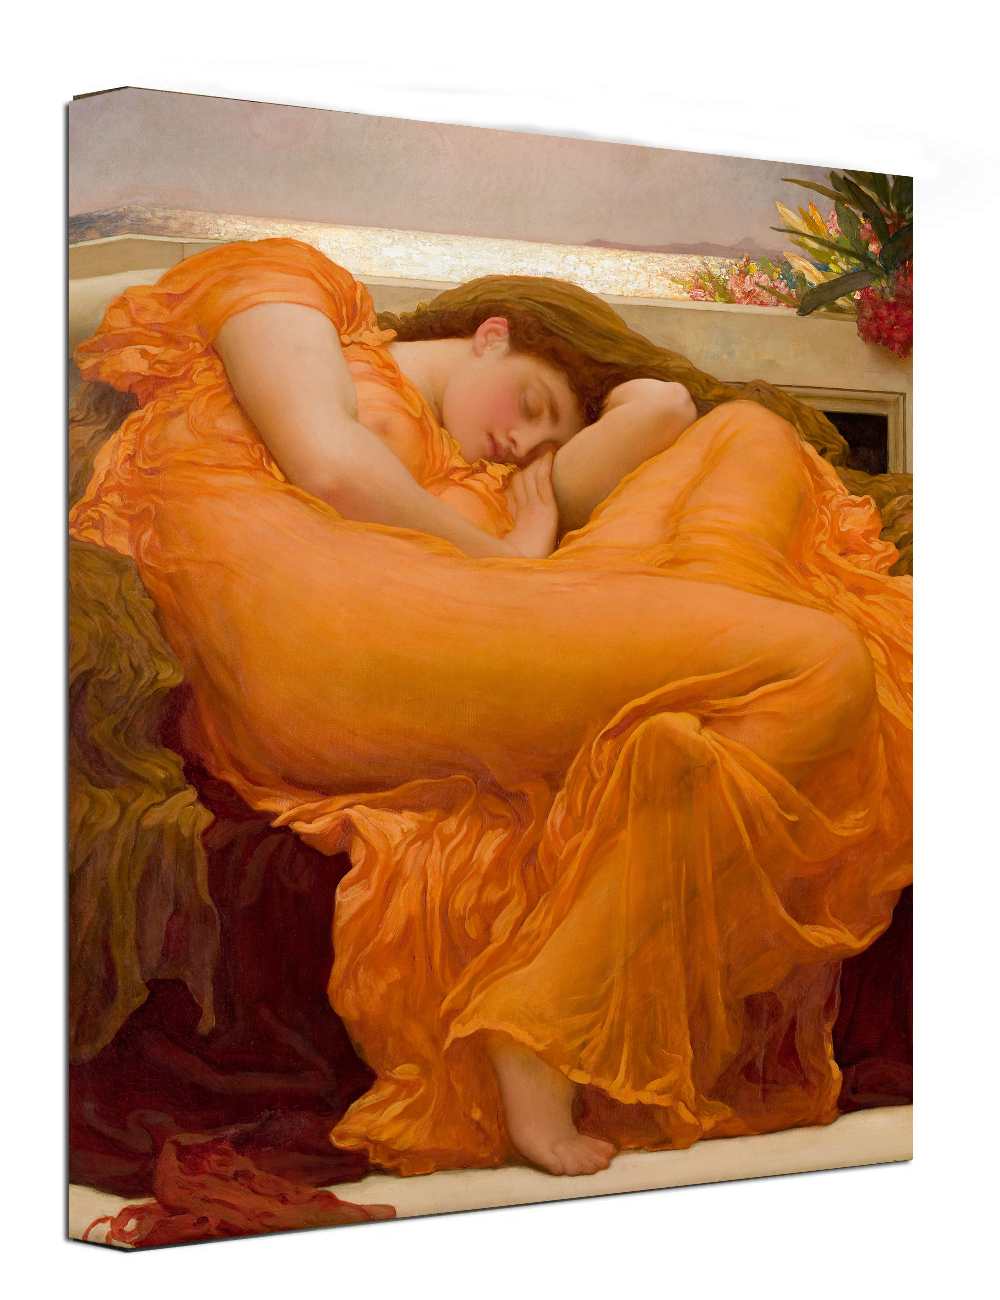 Flaming June, Frederic Leighton Classic Art Reproduction. Giclee Canvas Prints Wall Art Framed Ready to Hang